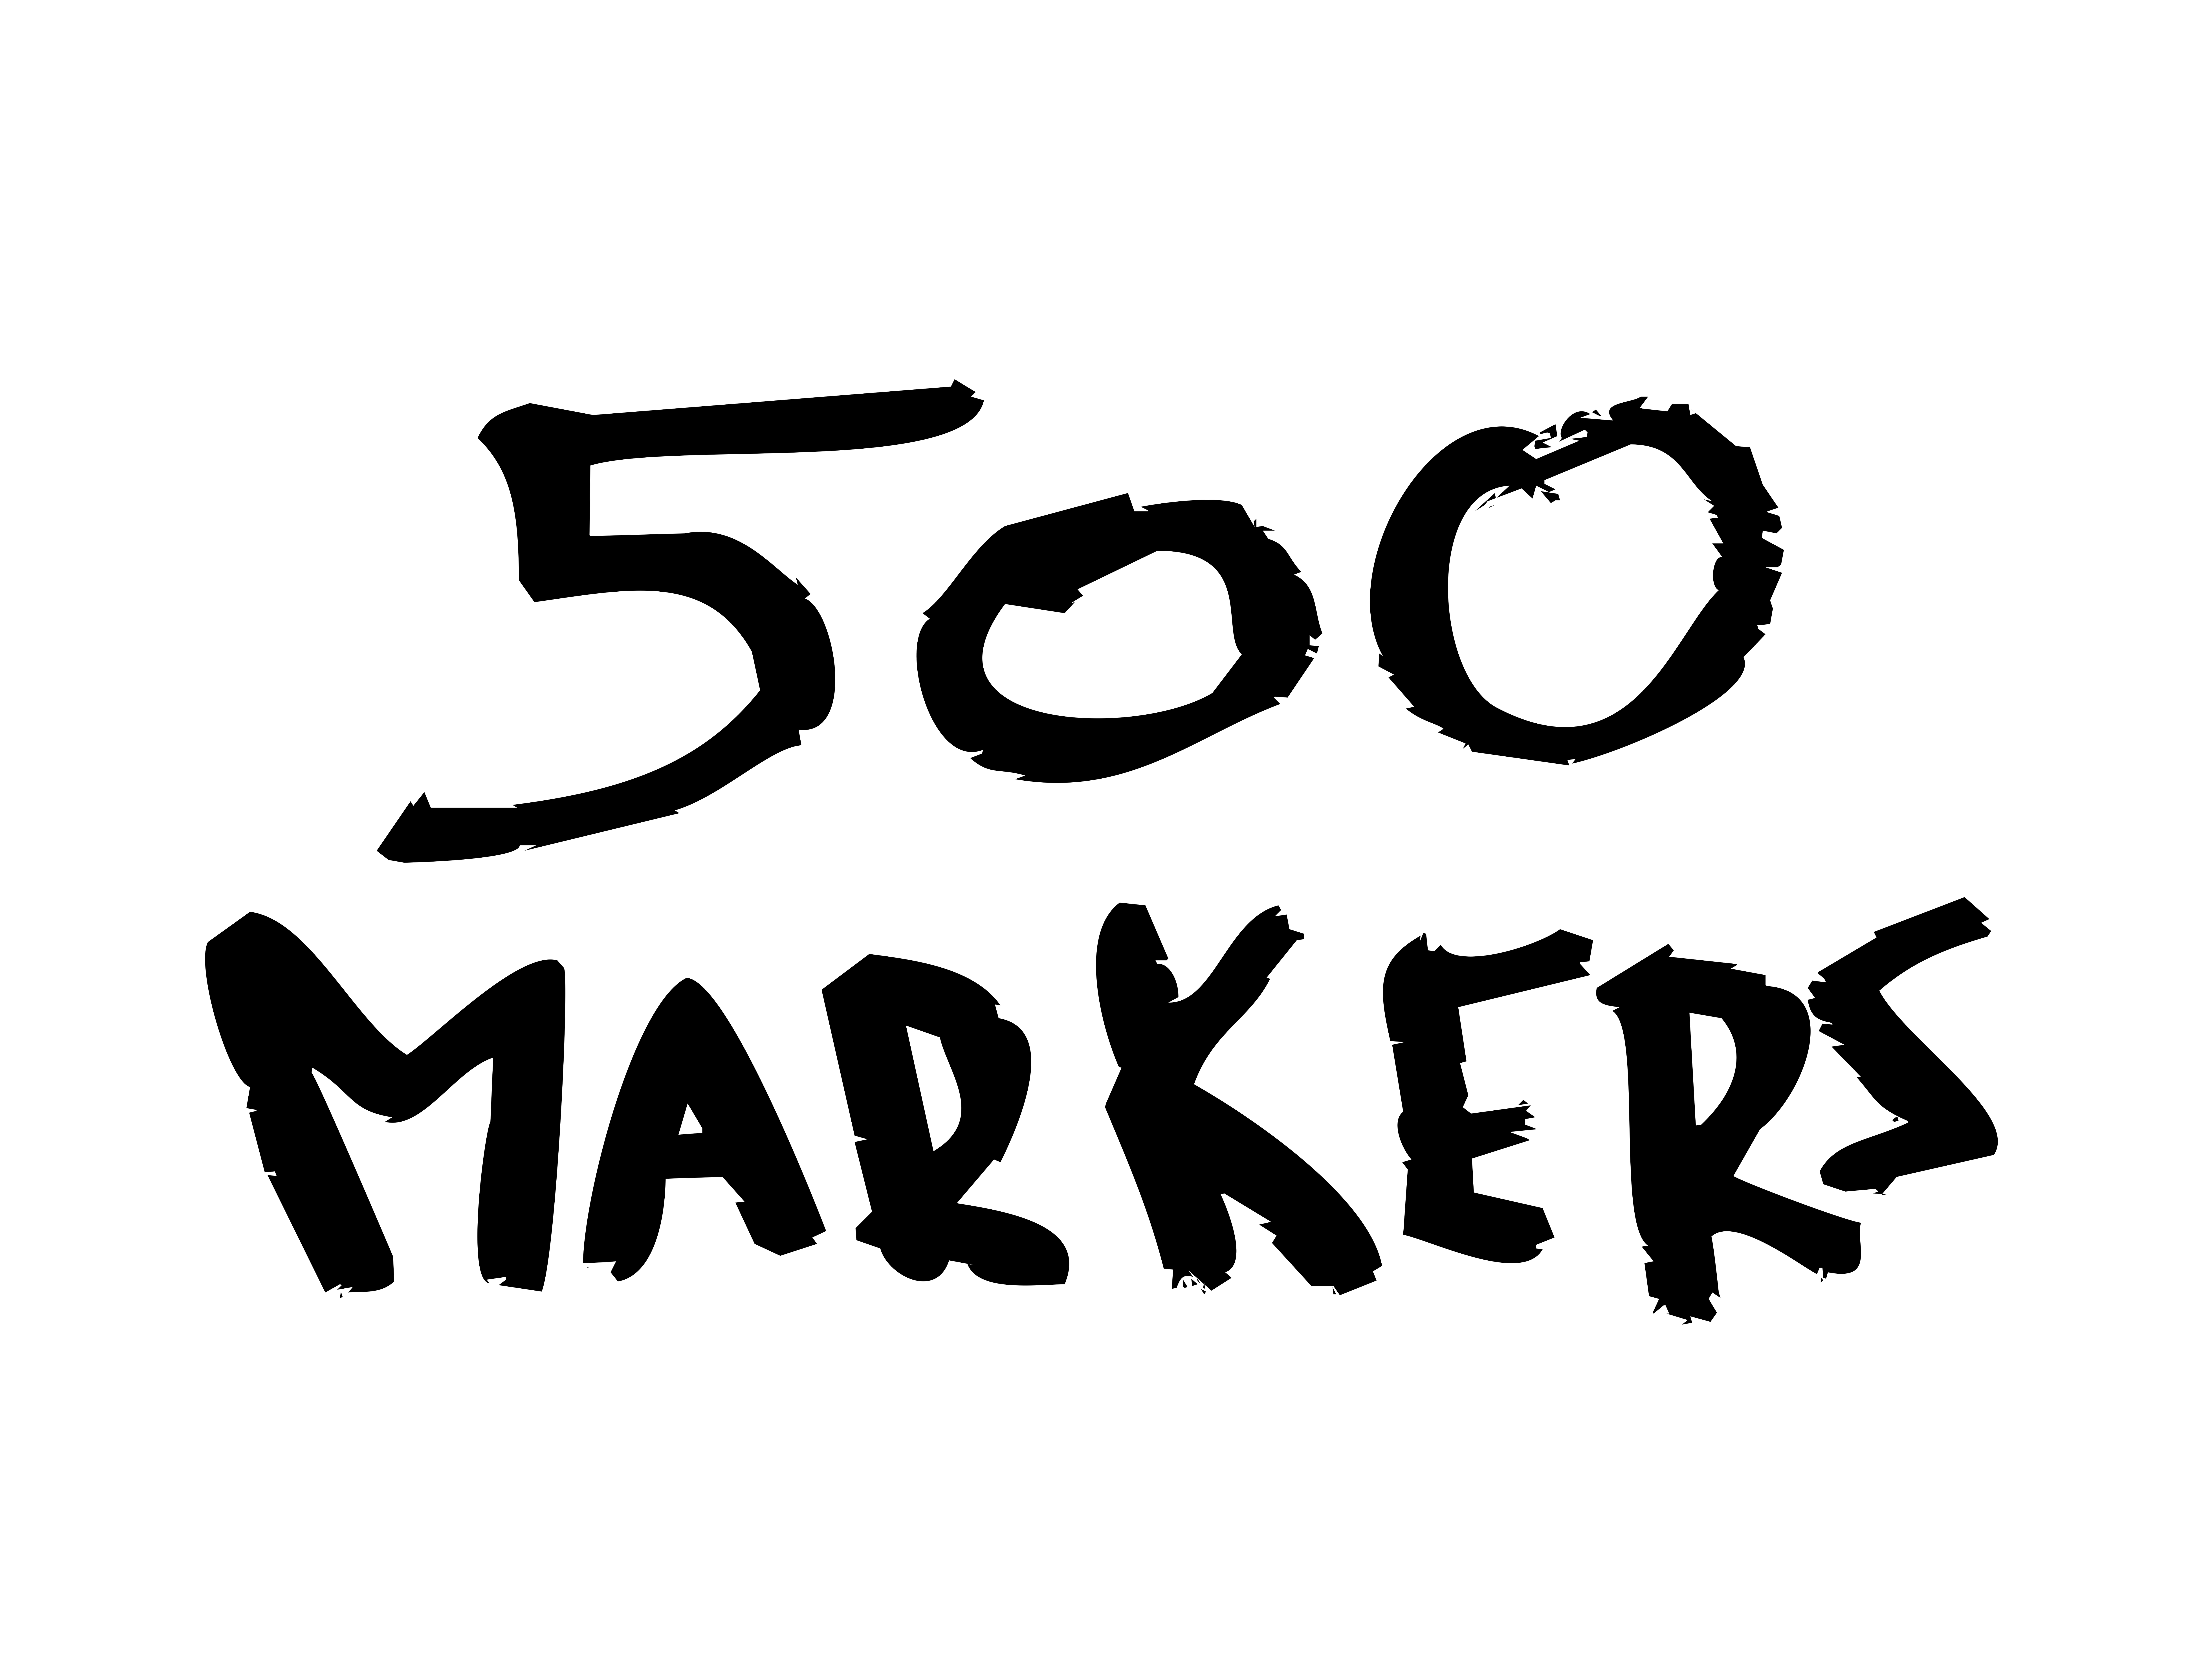 500 markers